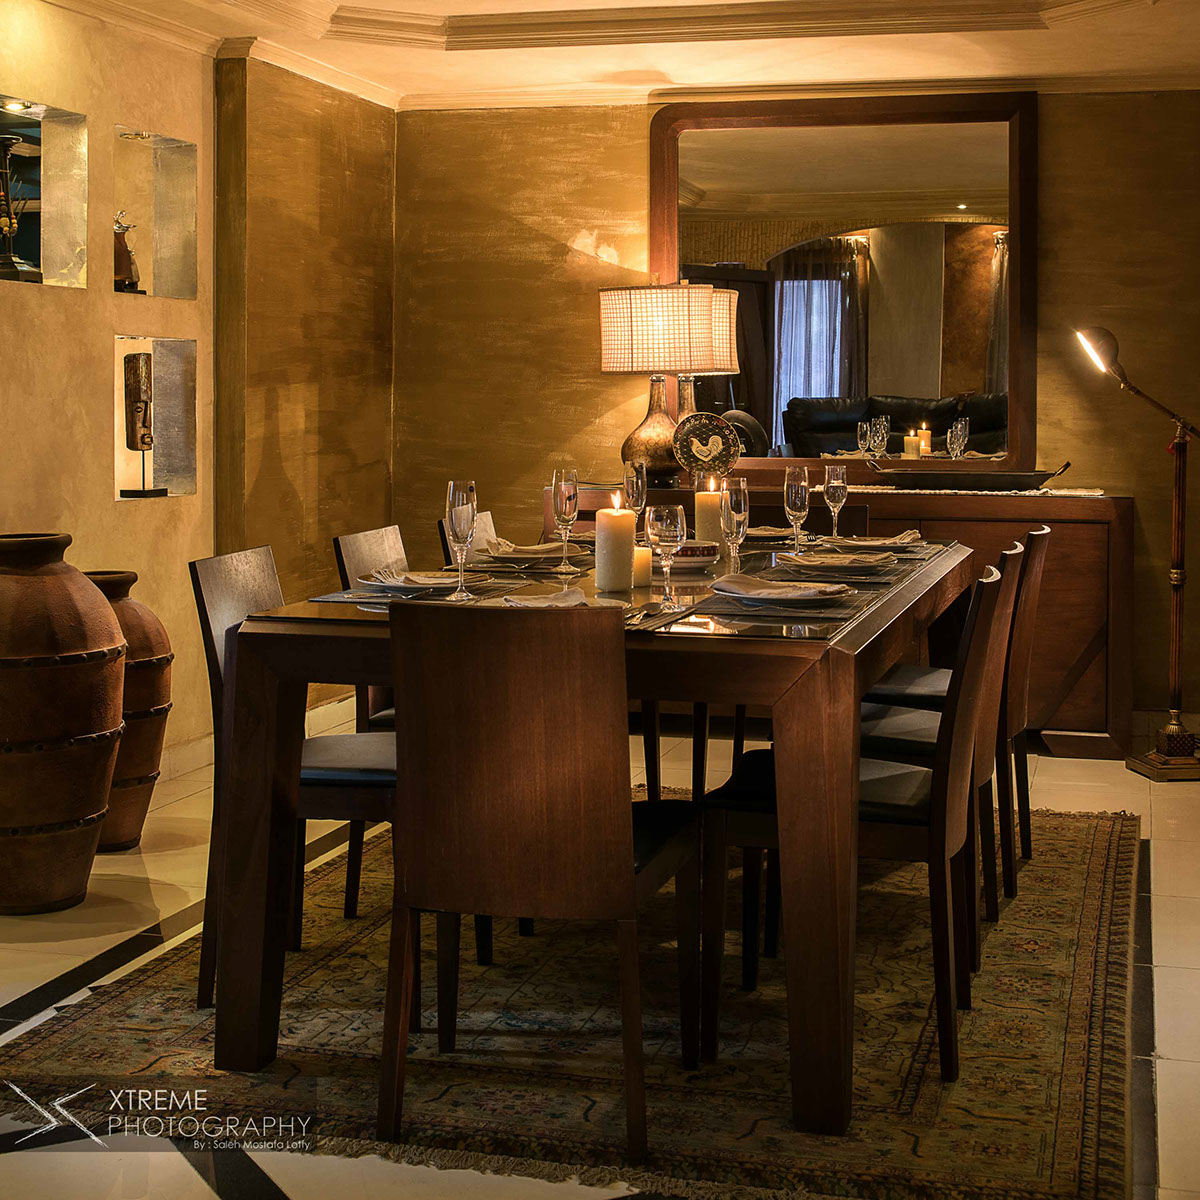 A America Bedroom And Dining Room Furniture On Sale: Dining Rooms On Behance